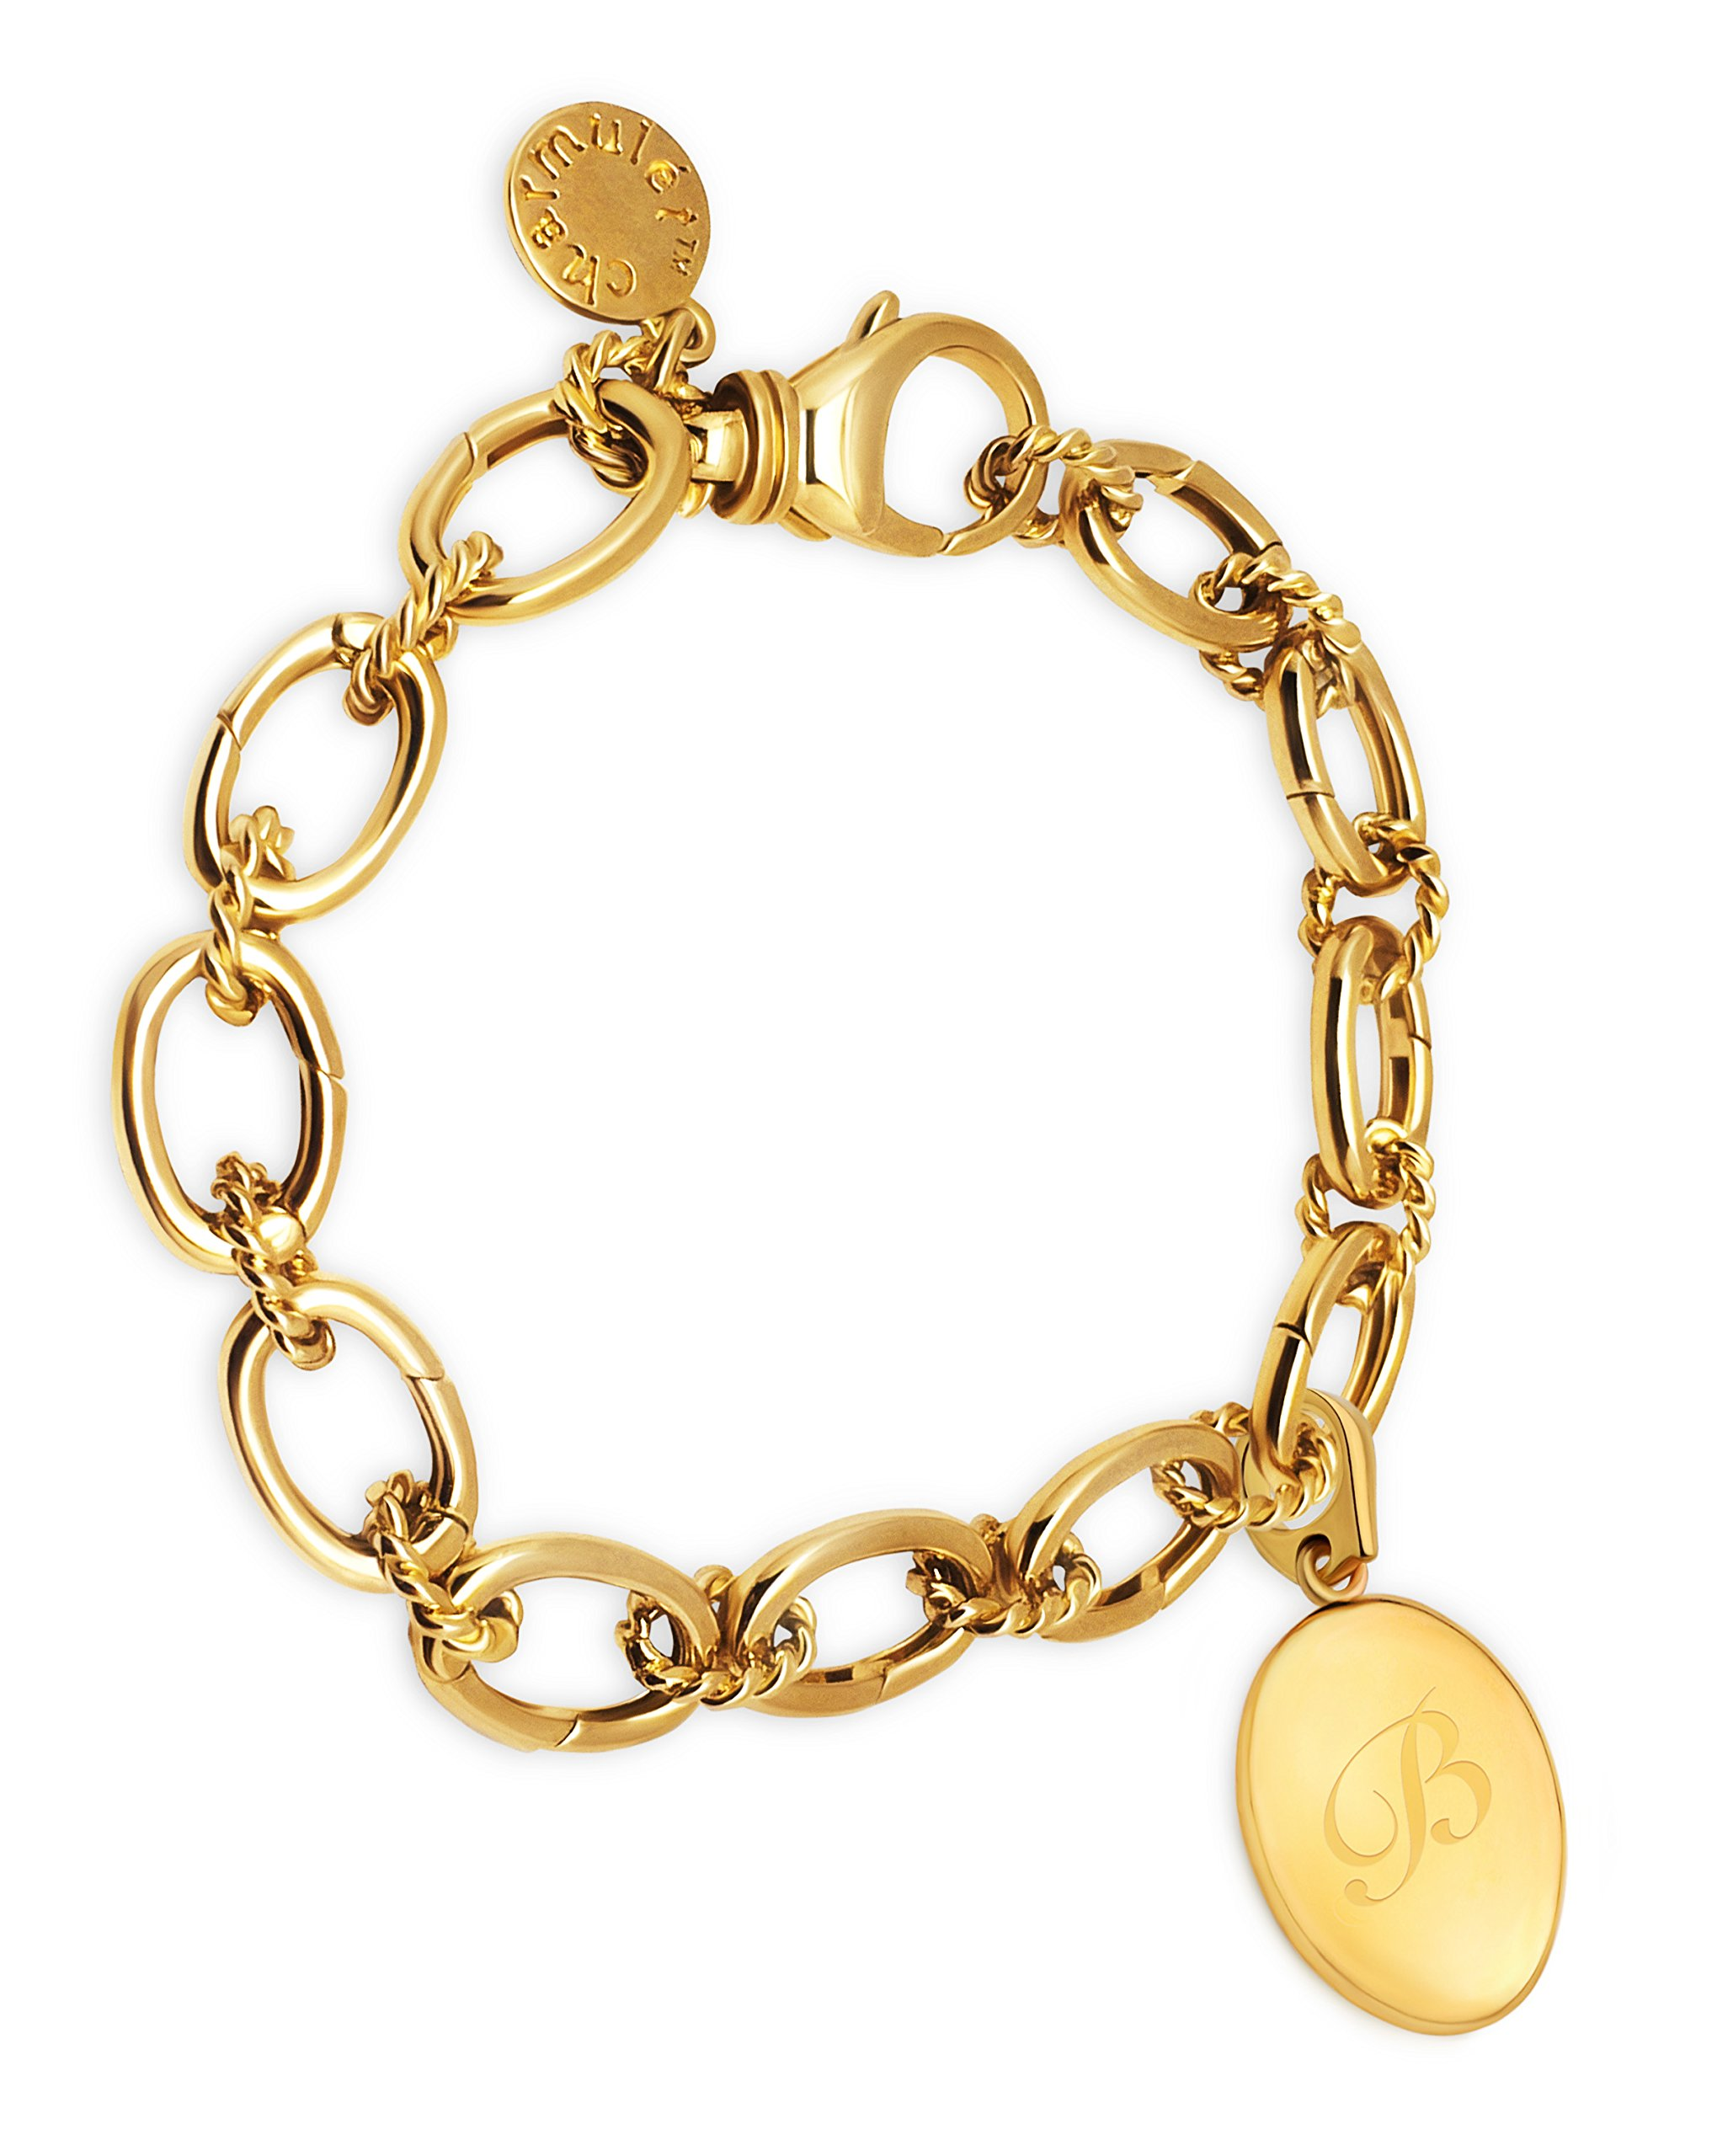 CHARMULET 14k Plated Gold Charm Bracelet With Oval Initial Locket Letter B - Gift Box Included